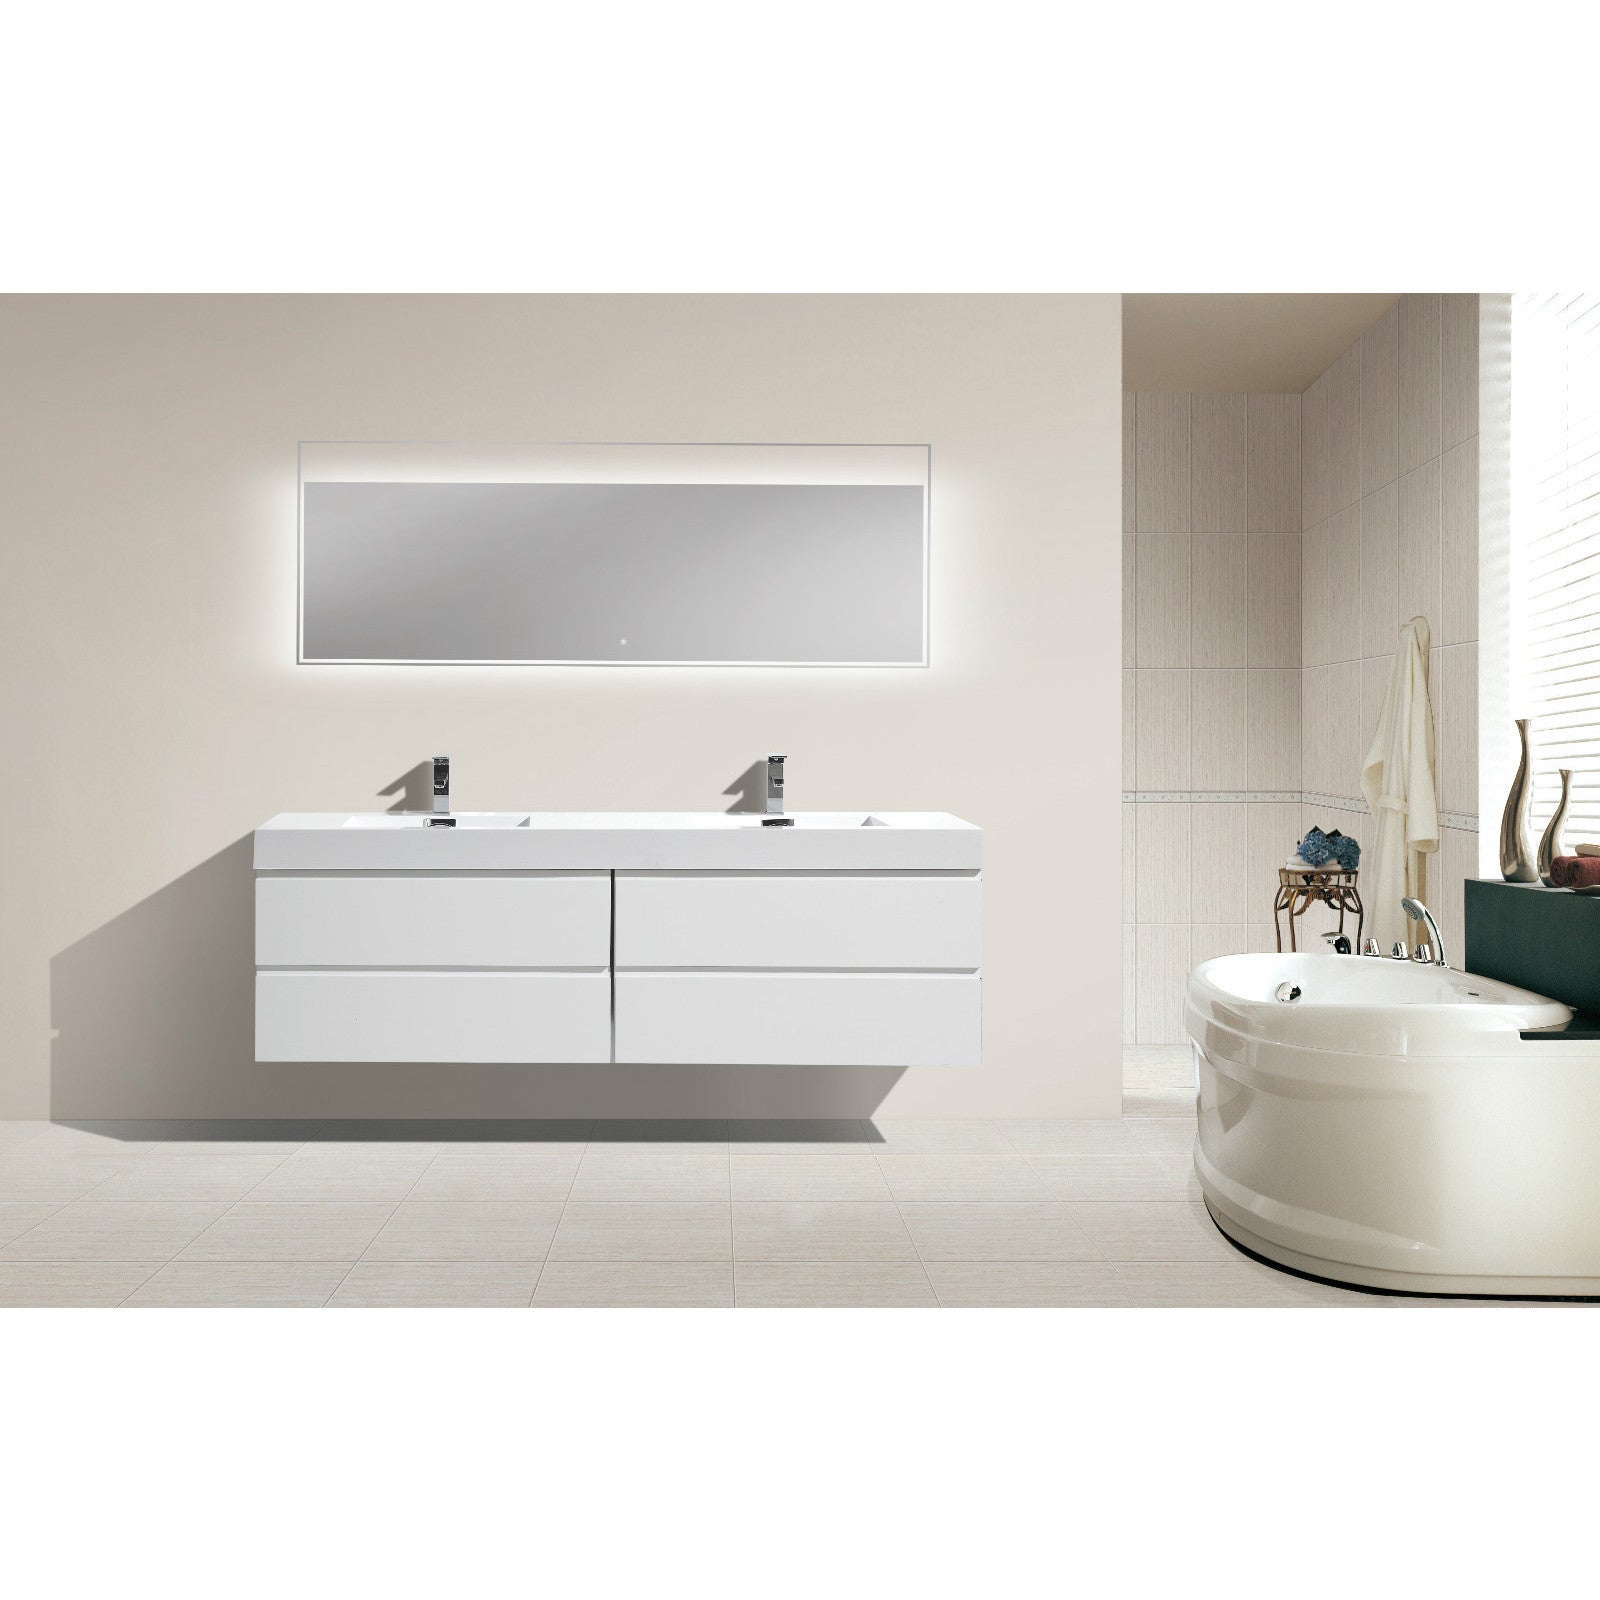 Moreno 72 Inch Wall Mounted Reinforced Acrylic Double Sink Bathroom Vanity  (4 Options Available